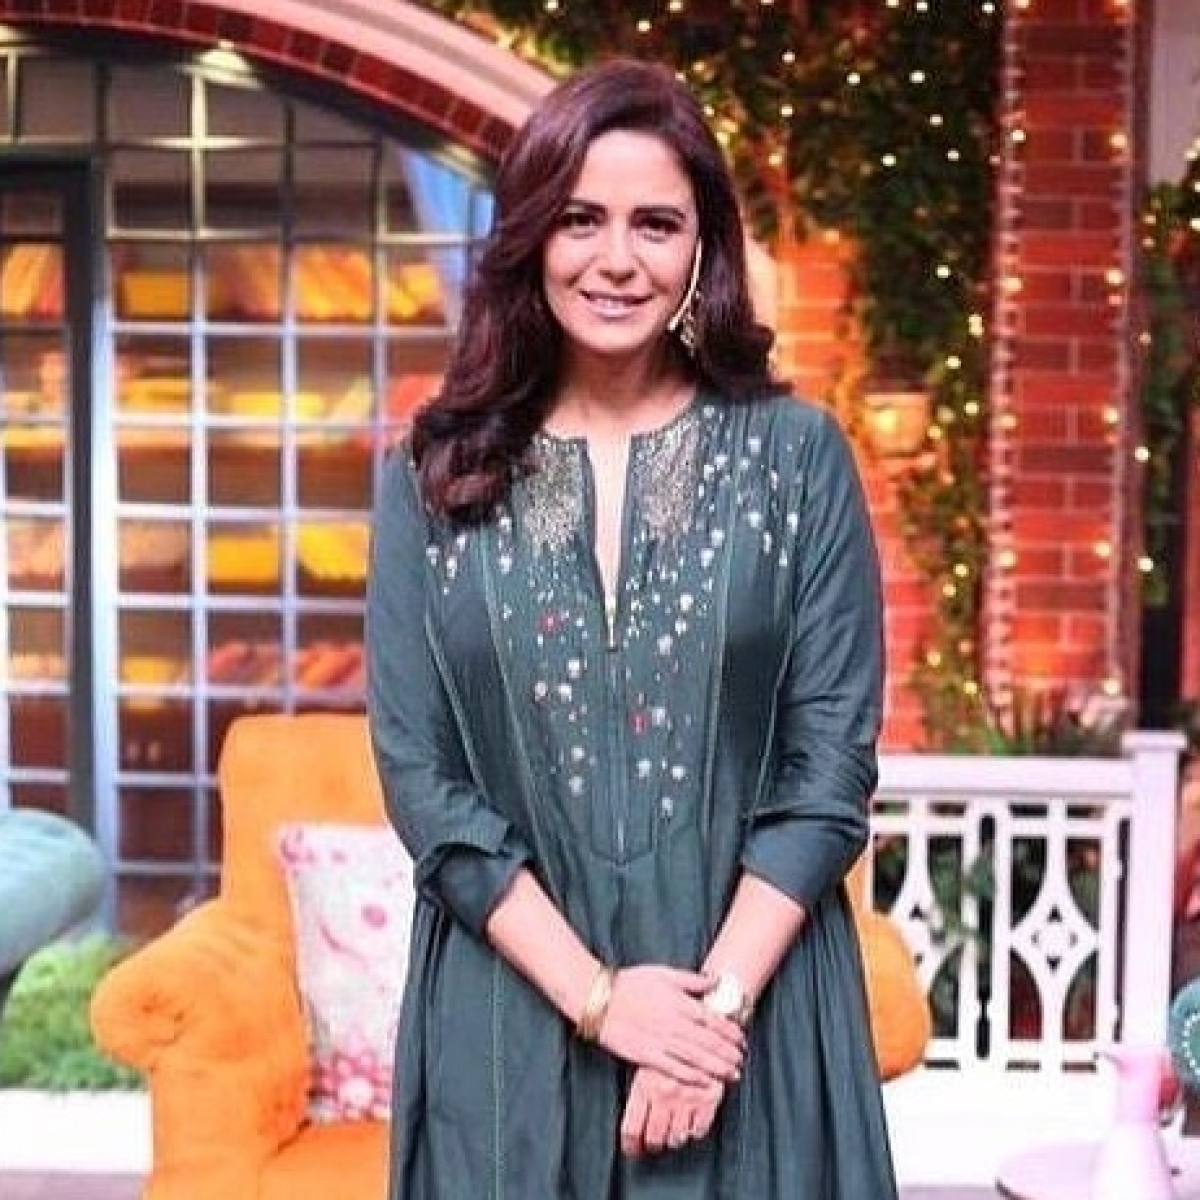 Hobby Talk with Mona Singh: 'I like collecting fridge magnets and have about 400 of those'